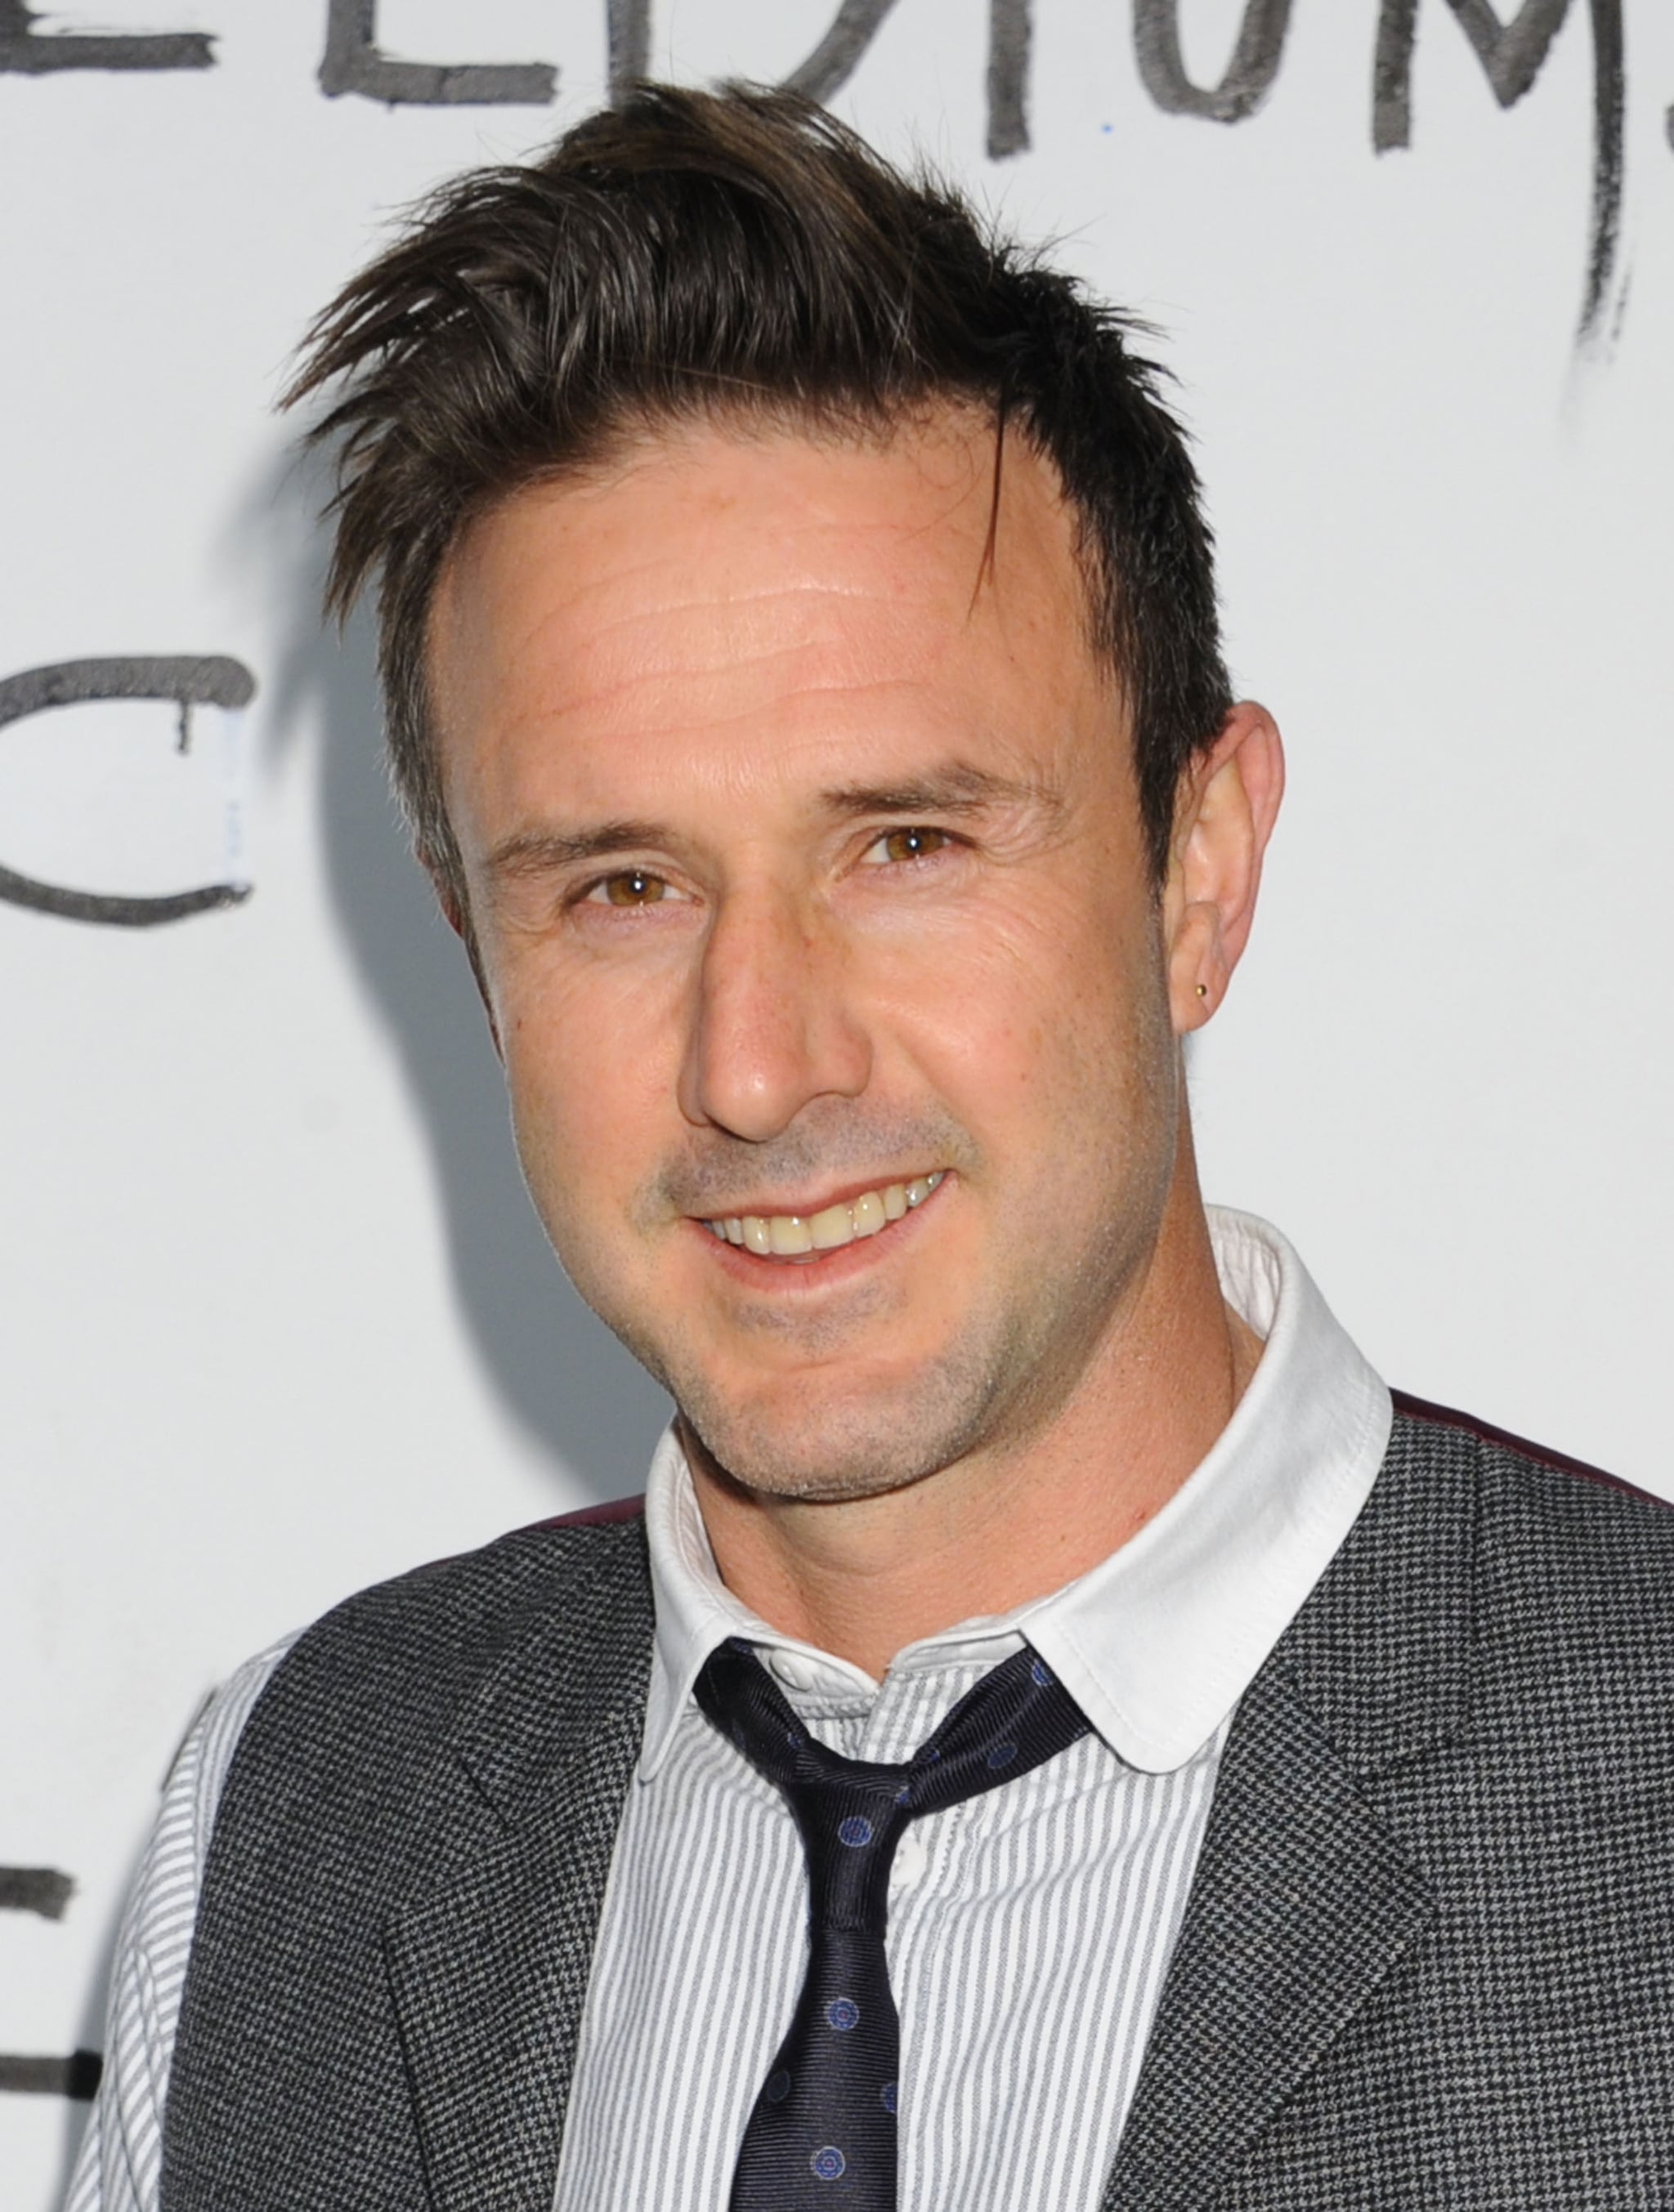 """David Arquette tweeted about his transgender sister, Alexis, in 2011: """"I grew up seeing how cruel people could be to someone trying to be true to themselves."""""""